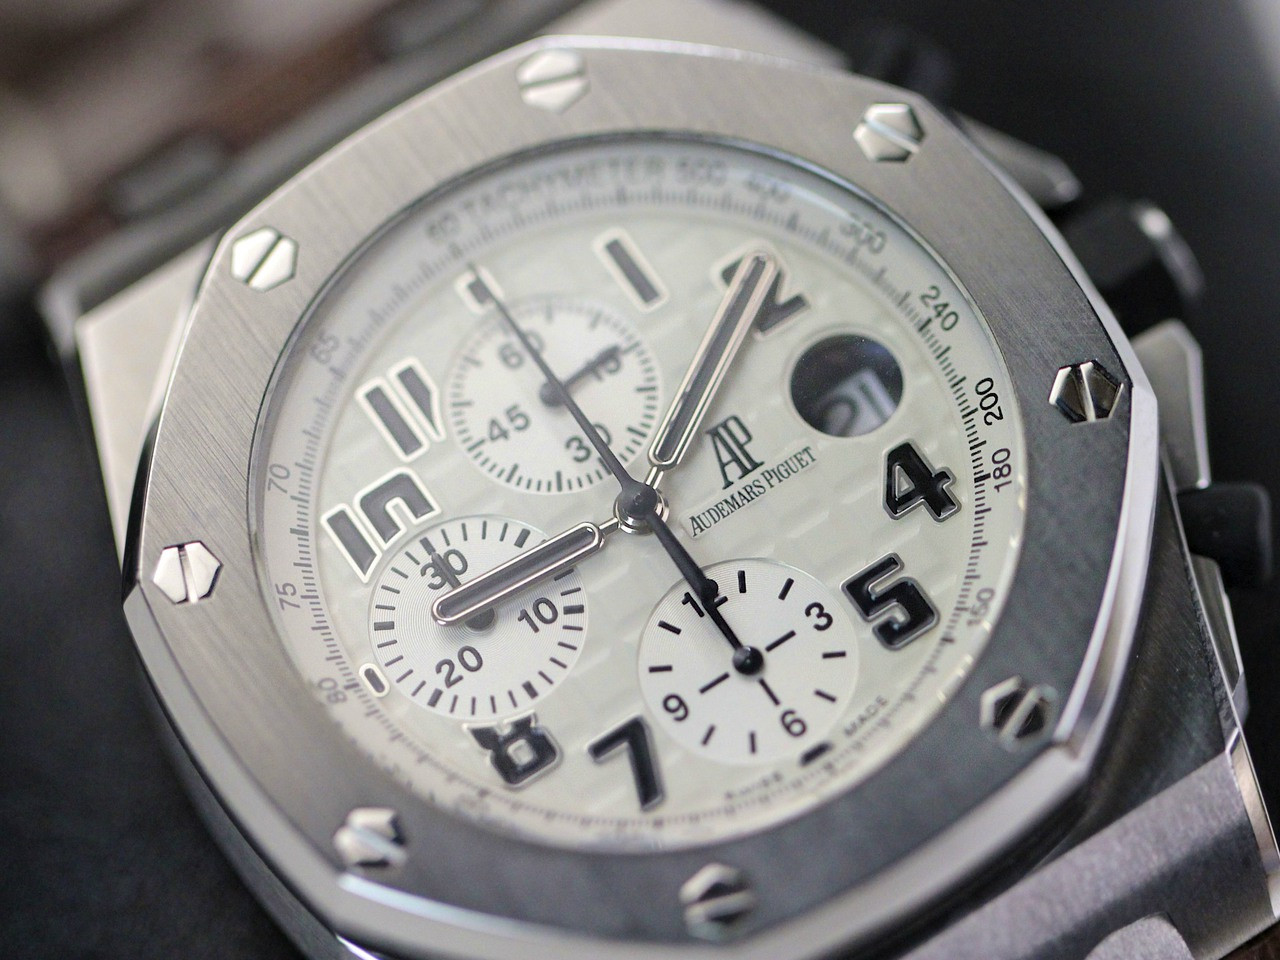 DIal & Bezel - Audemars Piguet Watch - Royal Oak Offshore Safari Chronograph 26170ST.OO.D091CR.01 - www.Legendoftime.com Chicago Watch Center